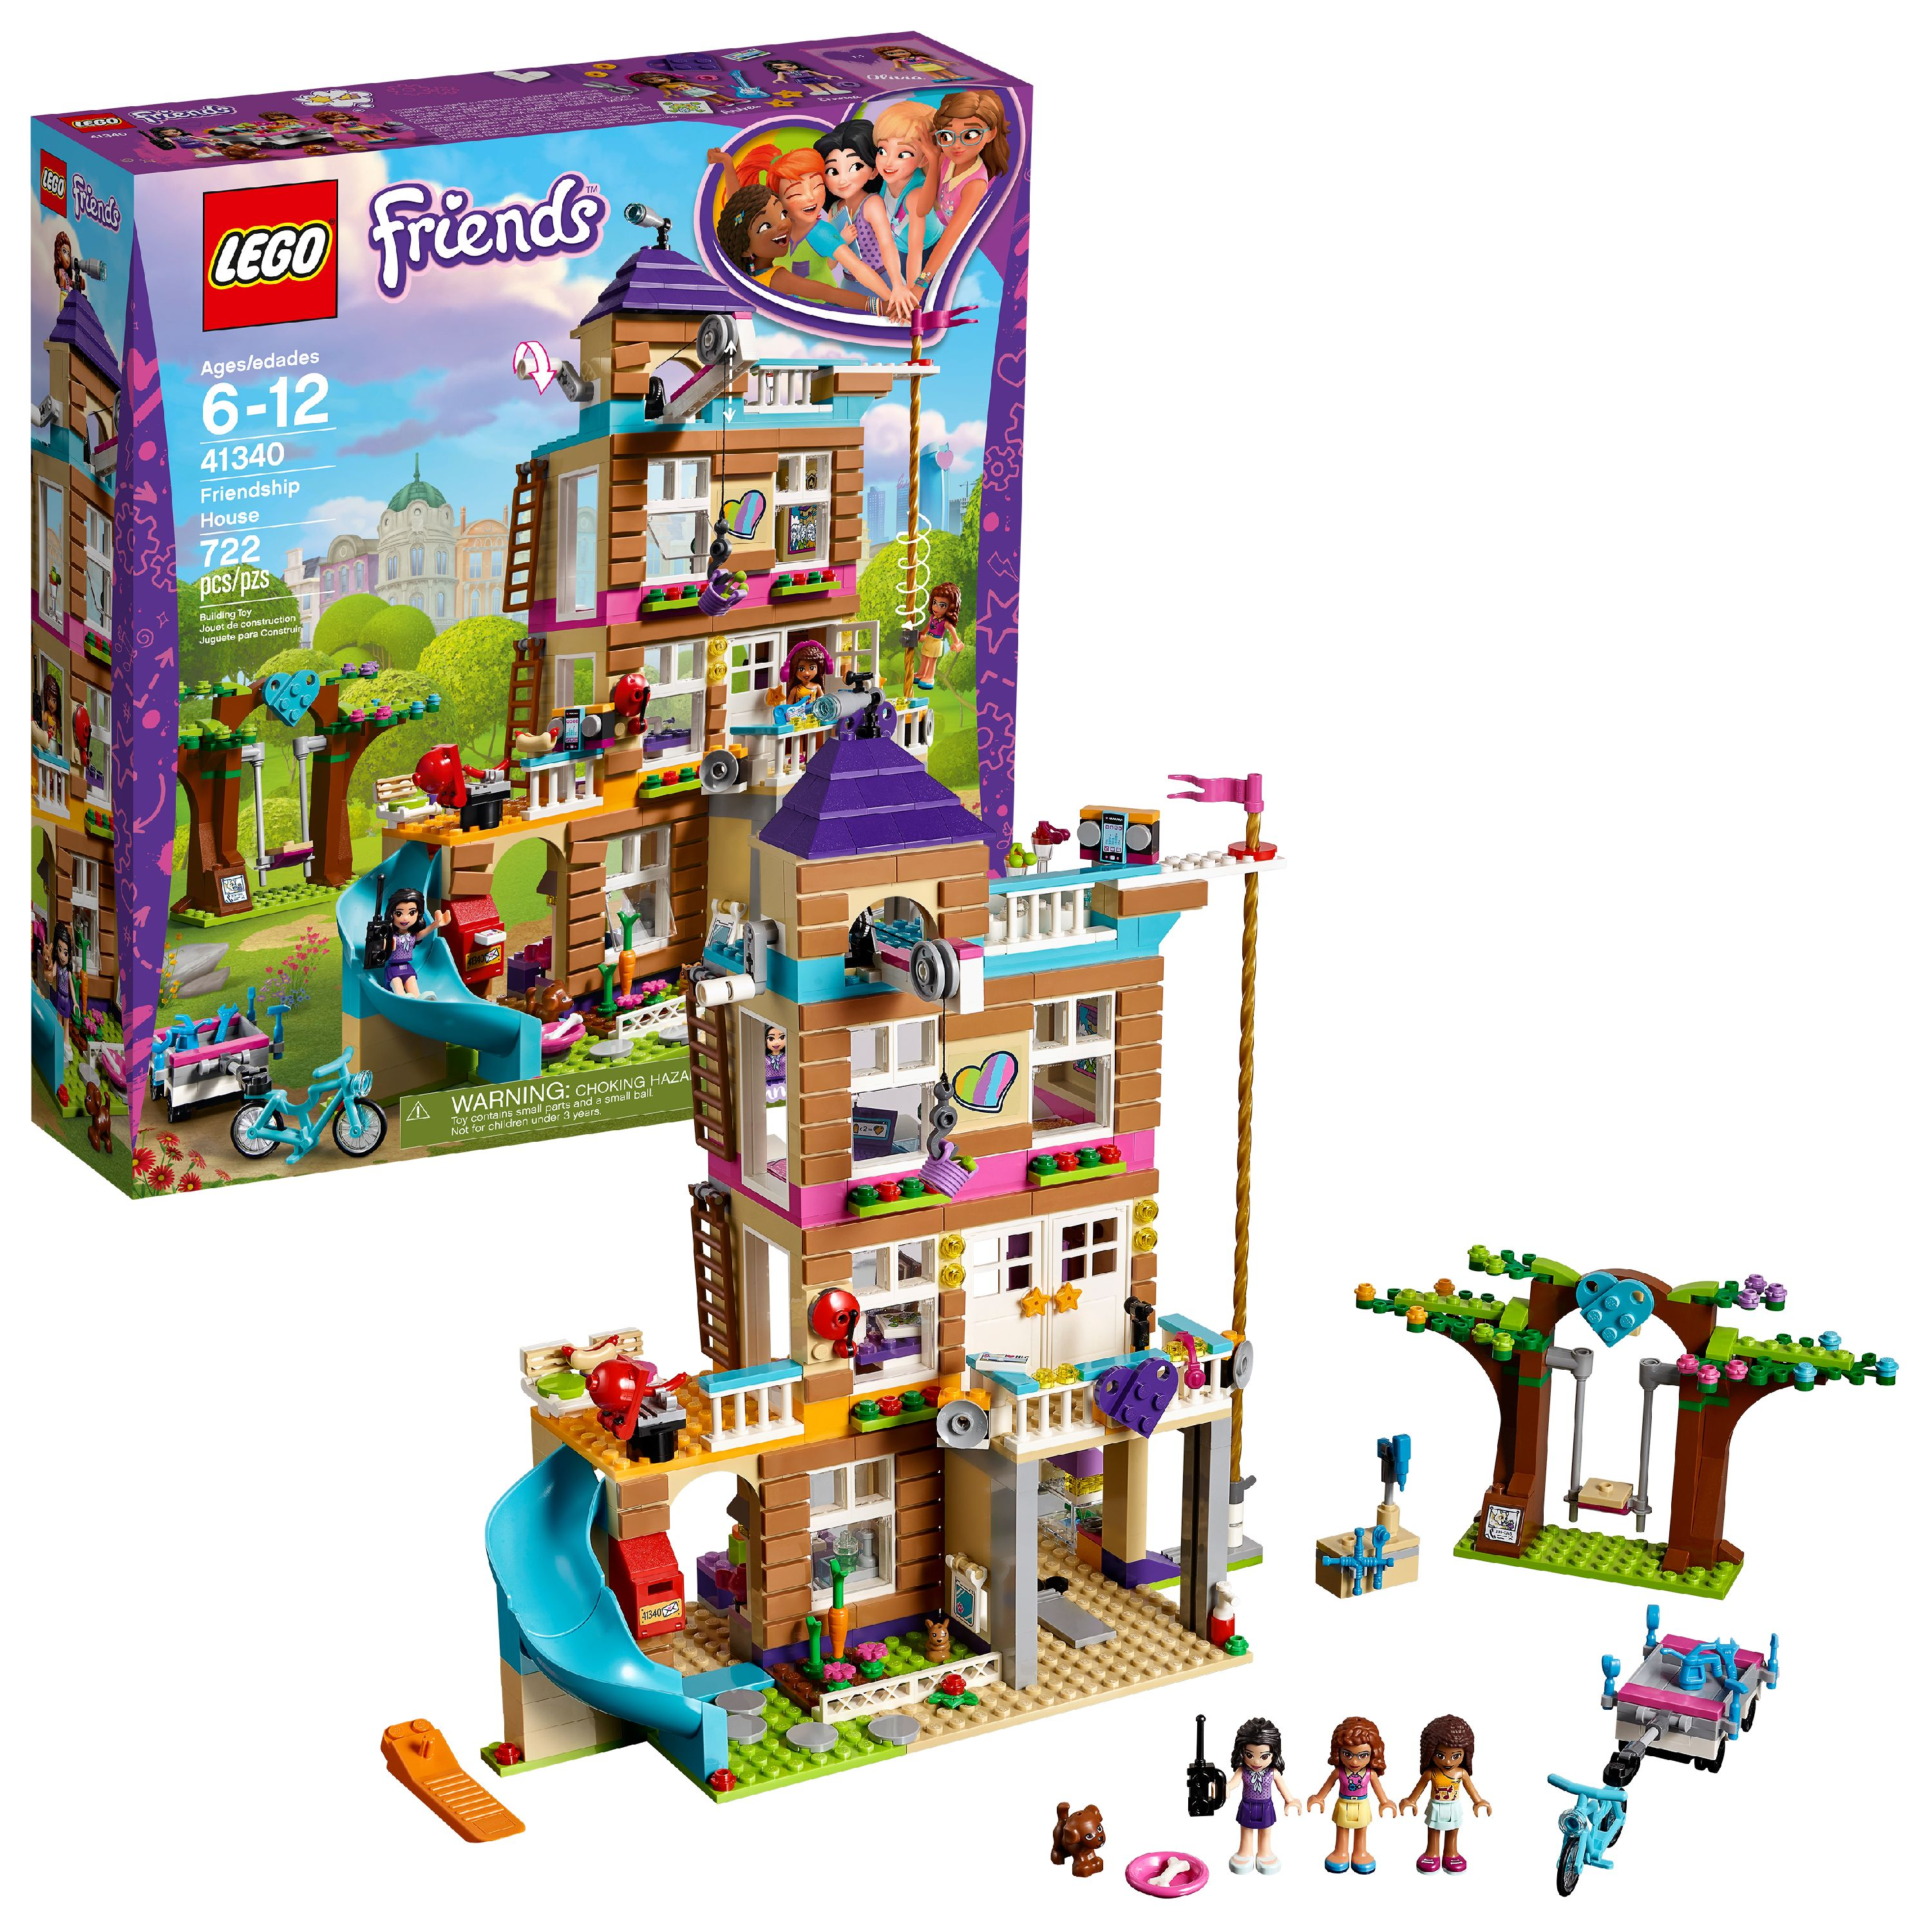 LEGO Friends Friendship House 41340 4-Story Building Set (722 Pieces)